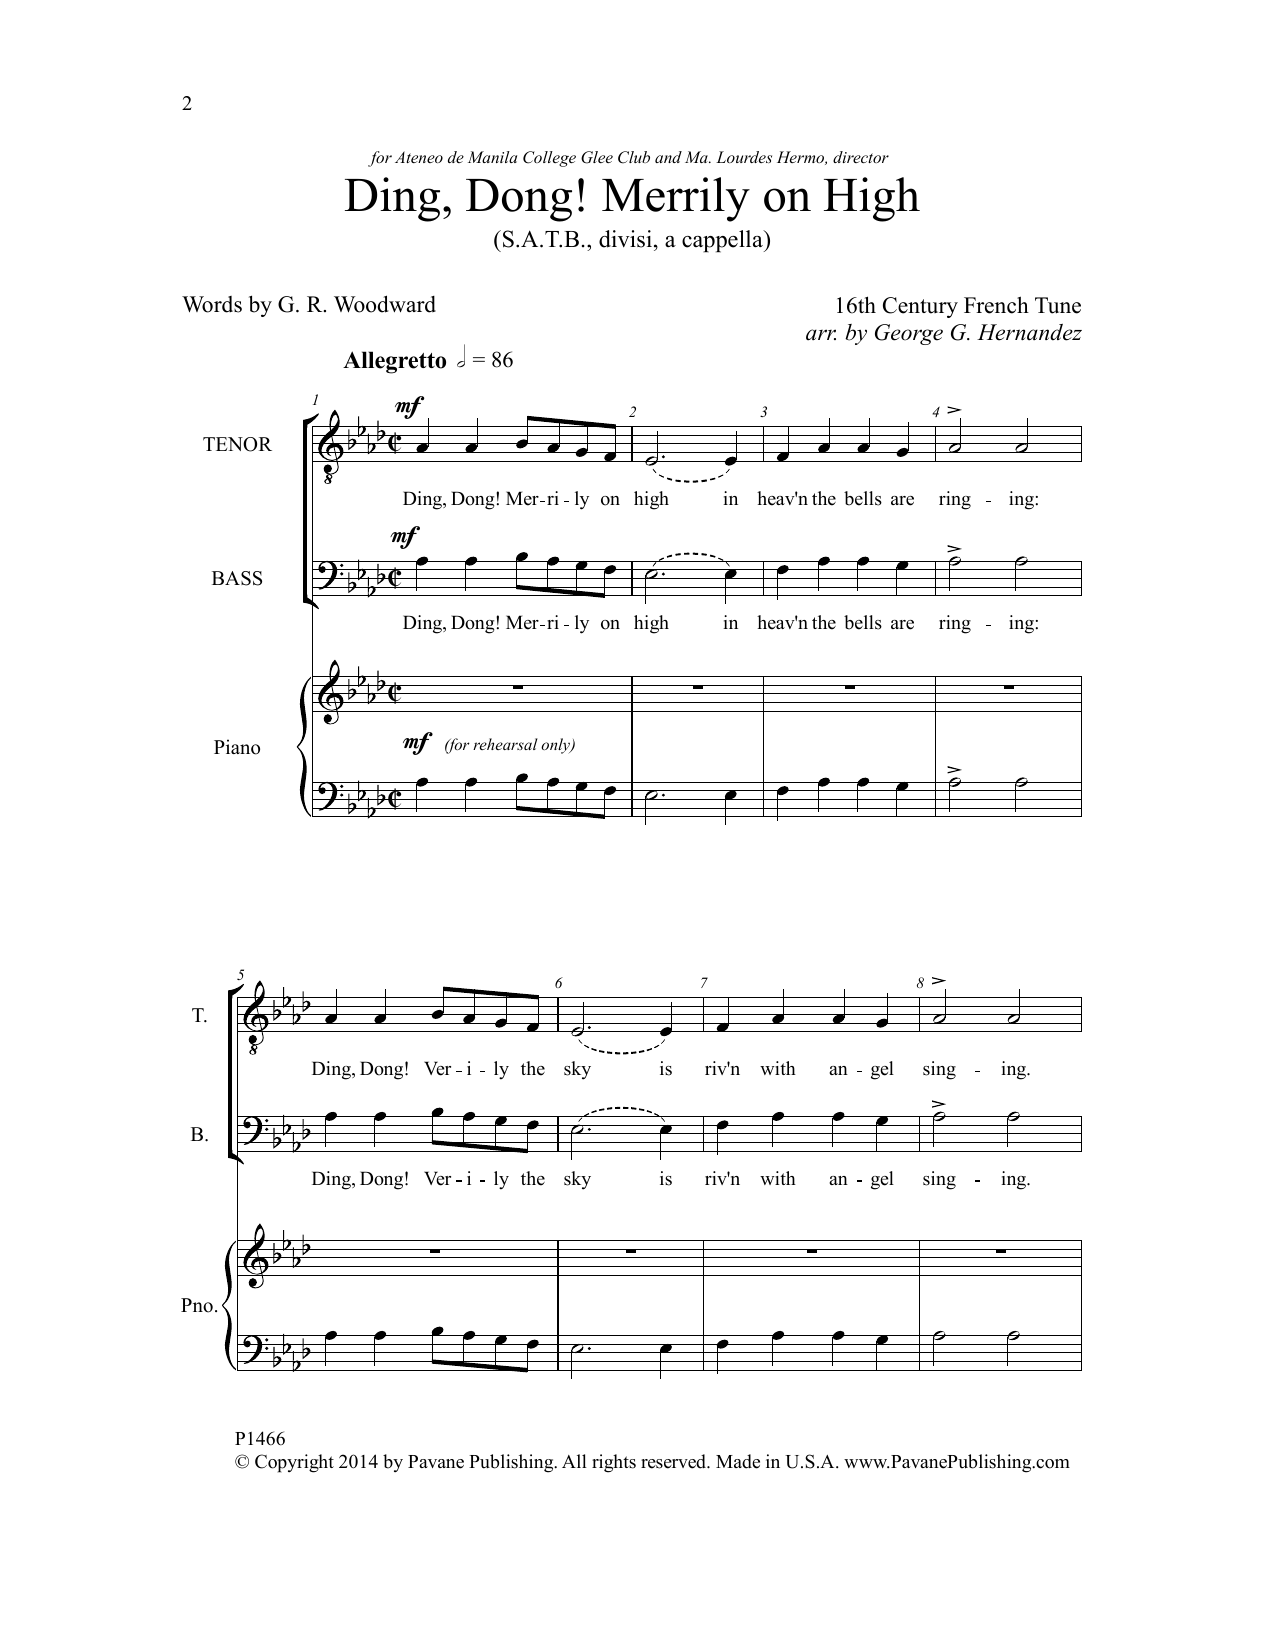 Ding, Dong! Merrily On High Sheet Music